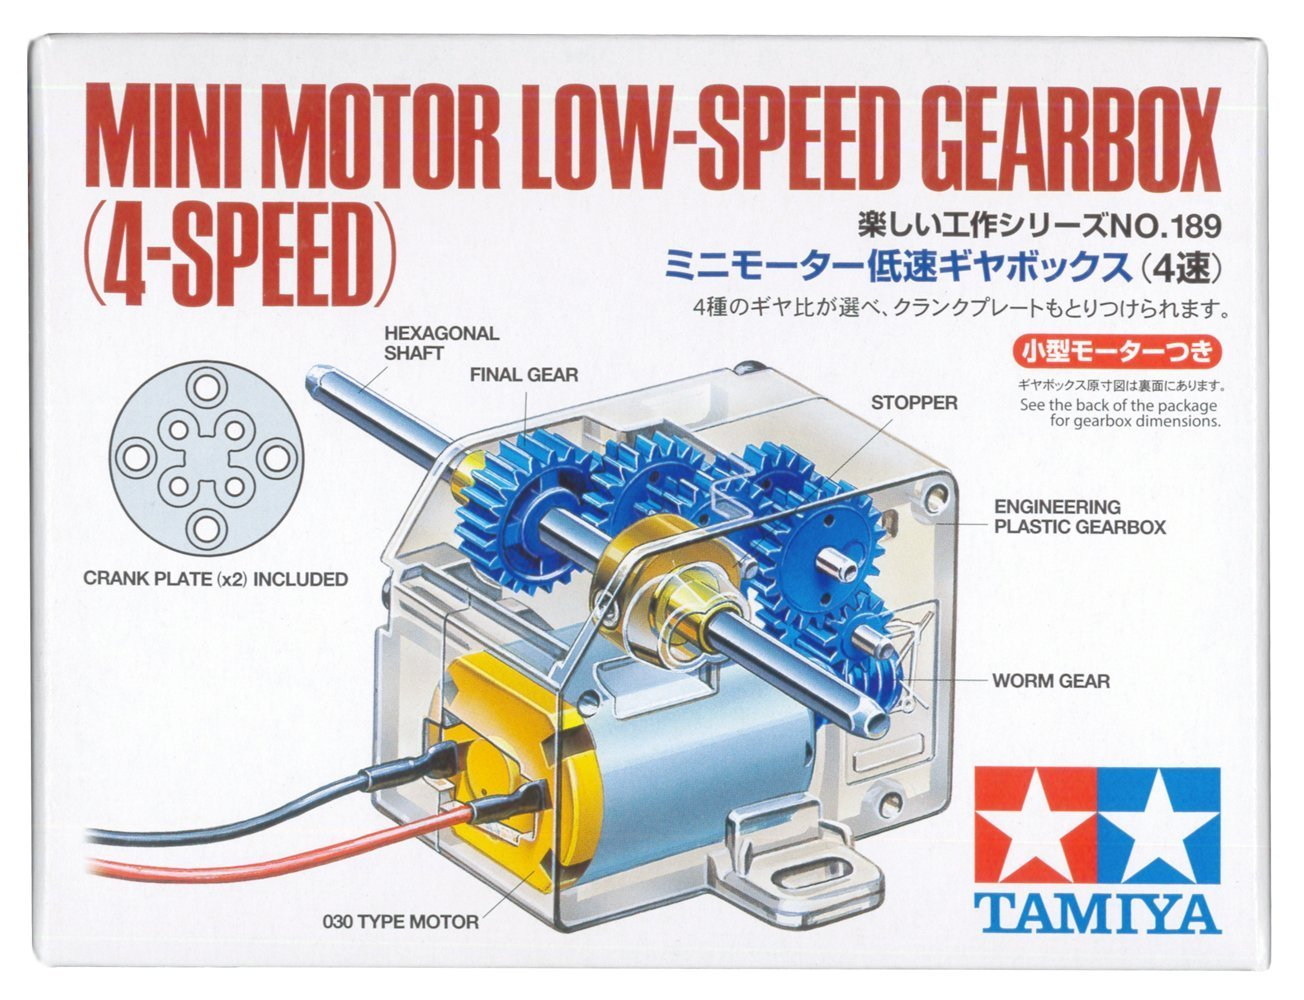 Tamiya Usa Tam70189 Mini Motor Low Speed Gearbox 4 Children Hobbyists Or Any Electronics Fan About Electronic Circuits Toys Games